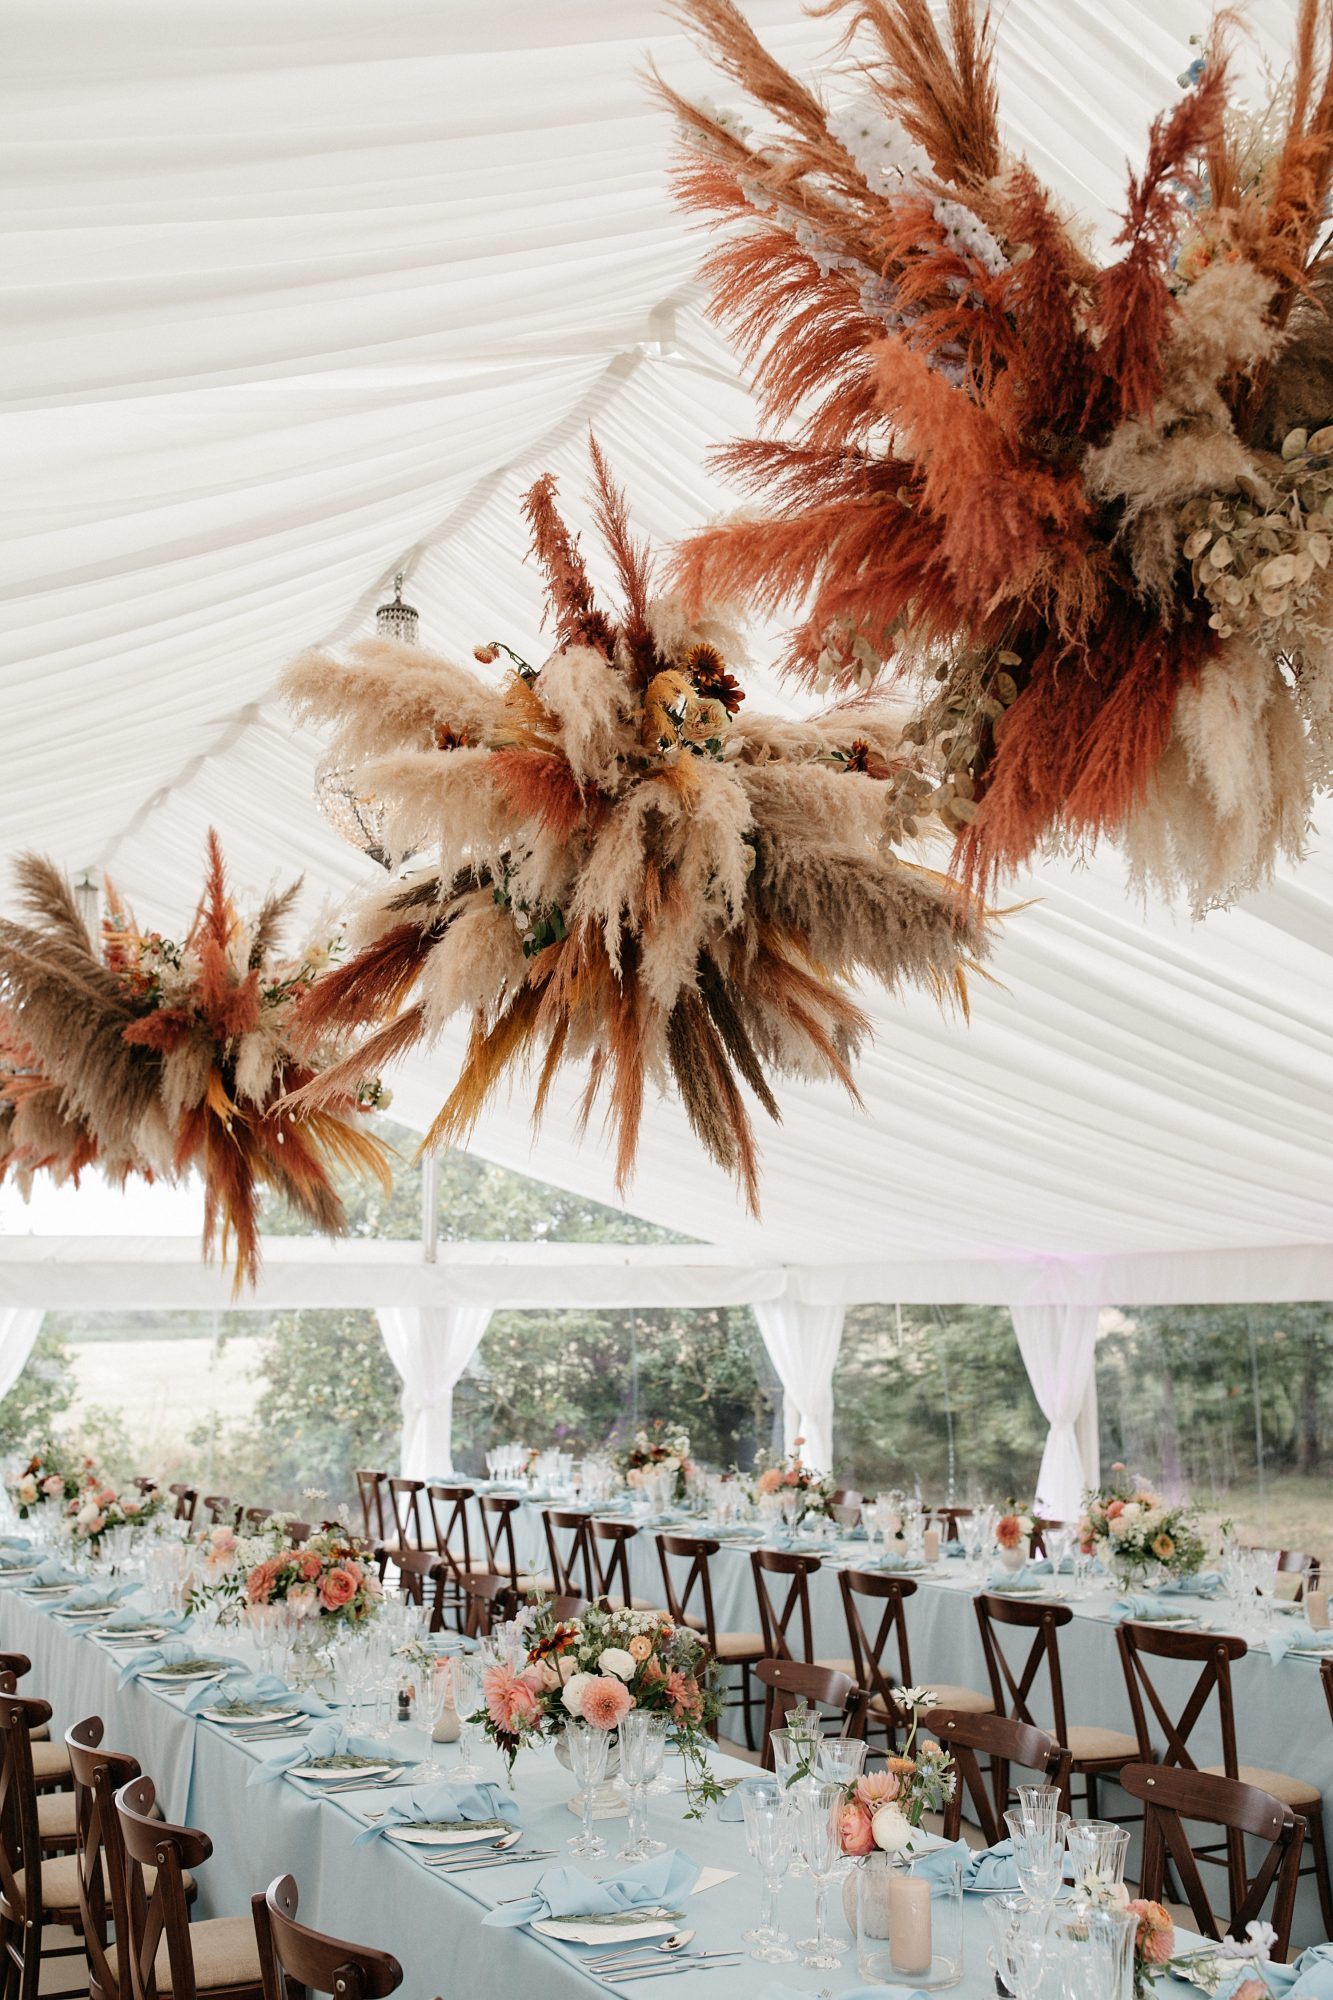 laurie lee wedding reception floral ceiling and table decor